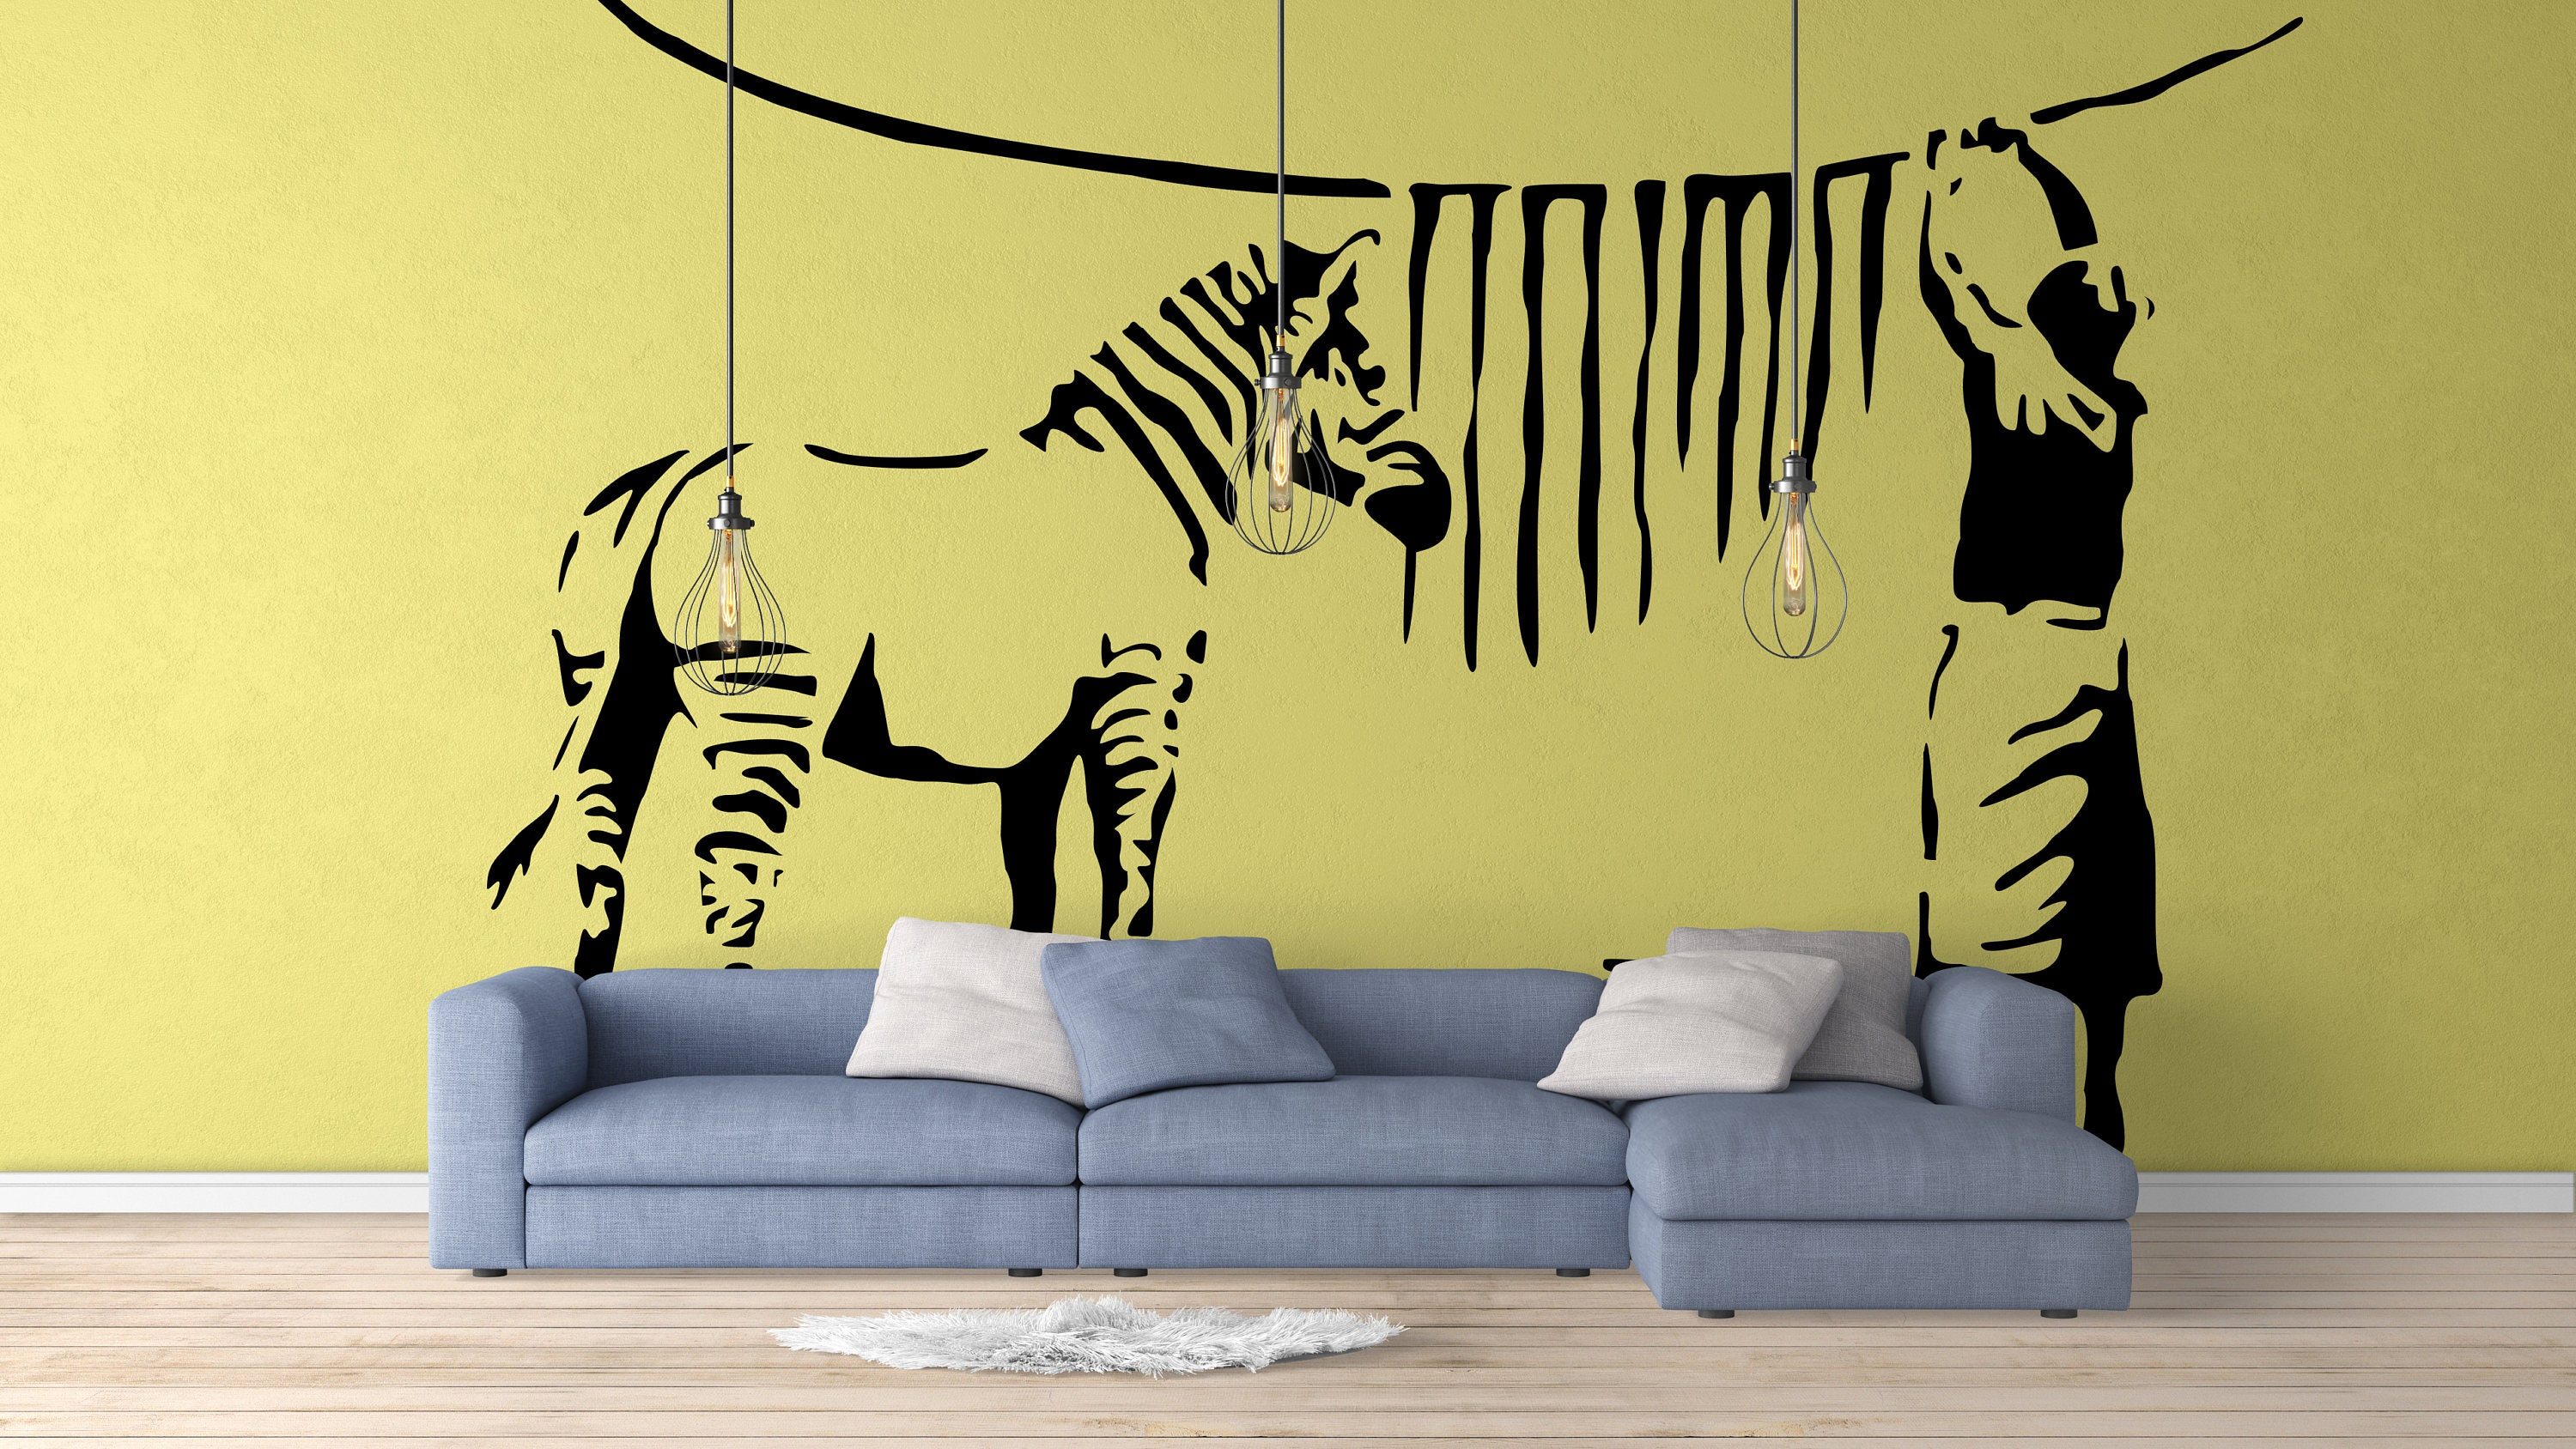 Banksy Zebra Stripe Washing Lady Wall Decal Sticker, Street art ...